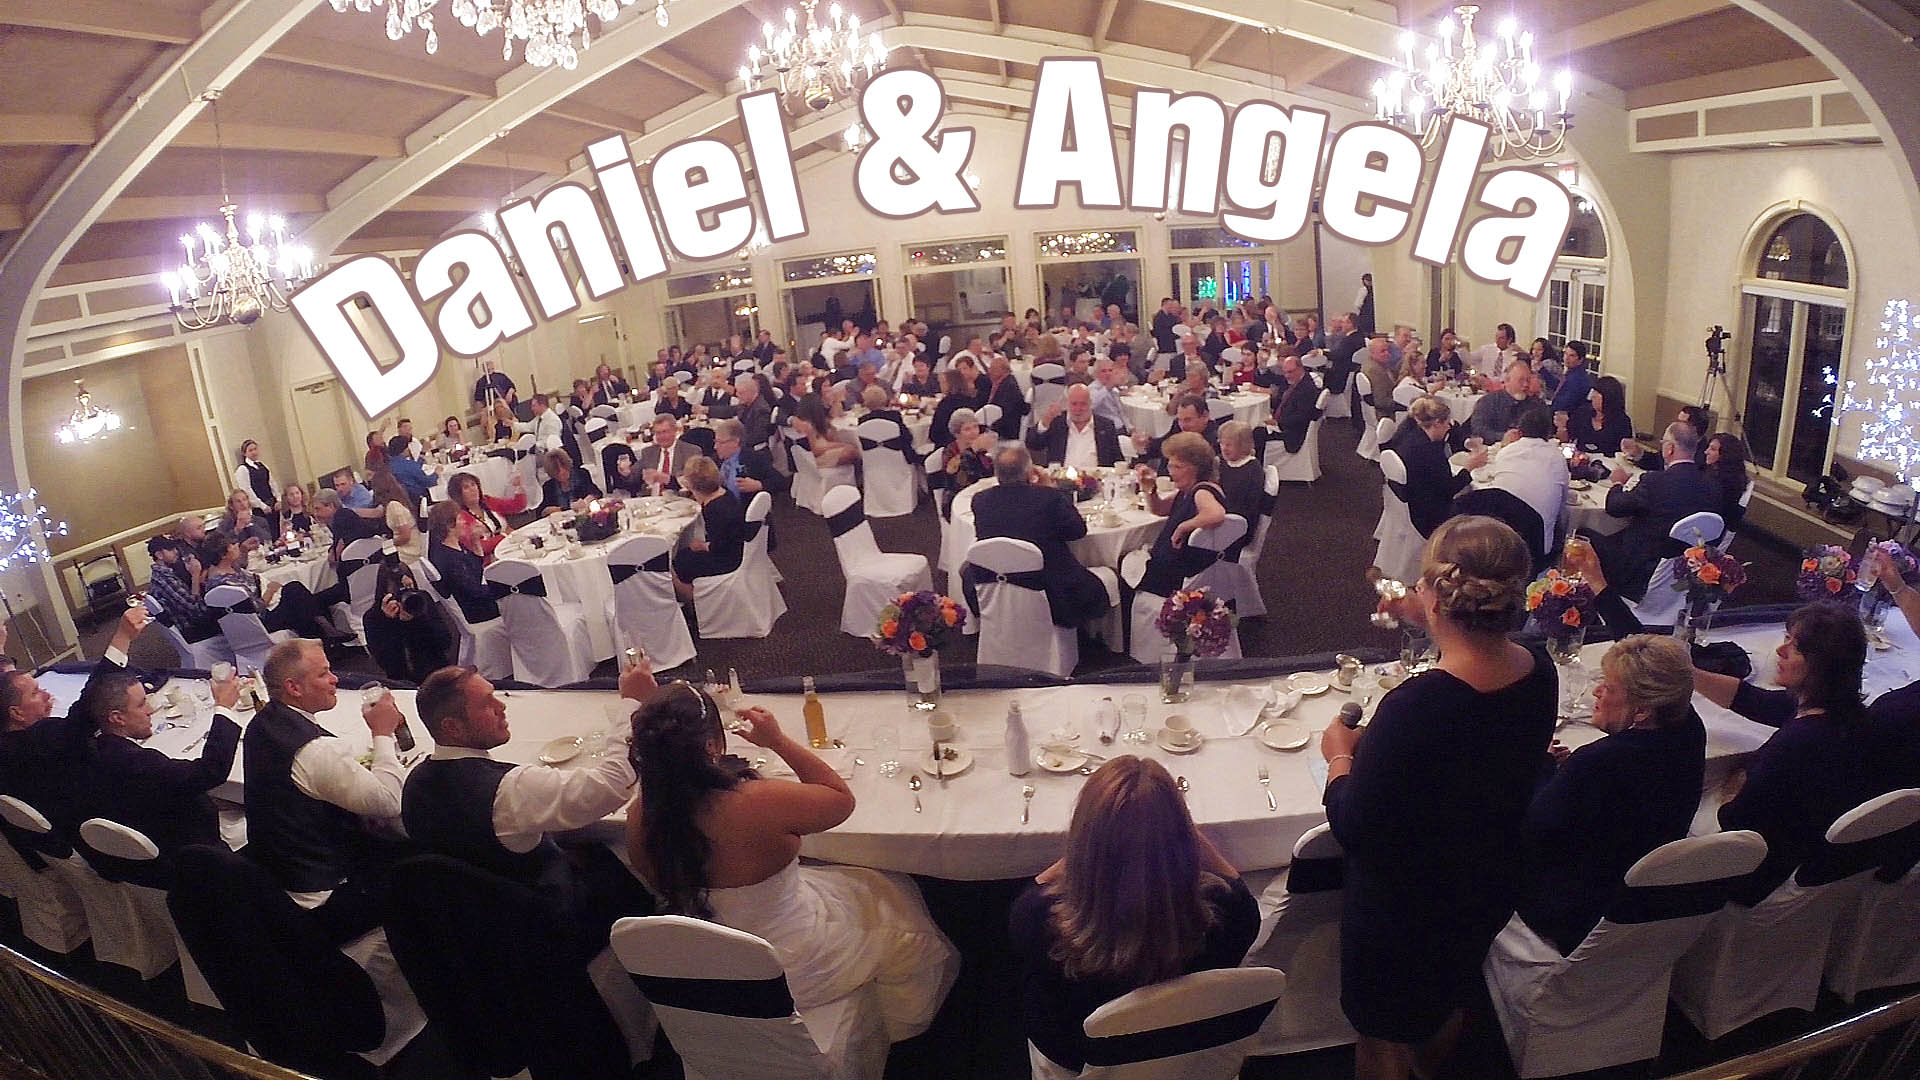 Dan & Angela – Hamburg NY Wedding Video Highlights